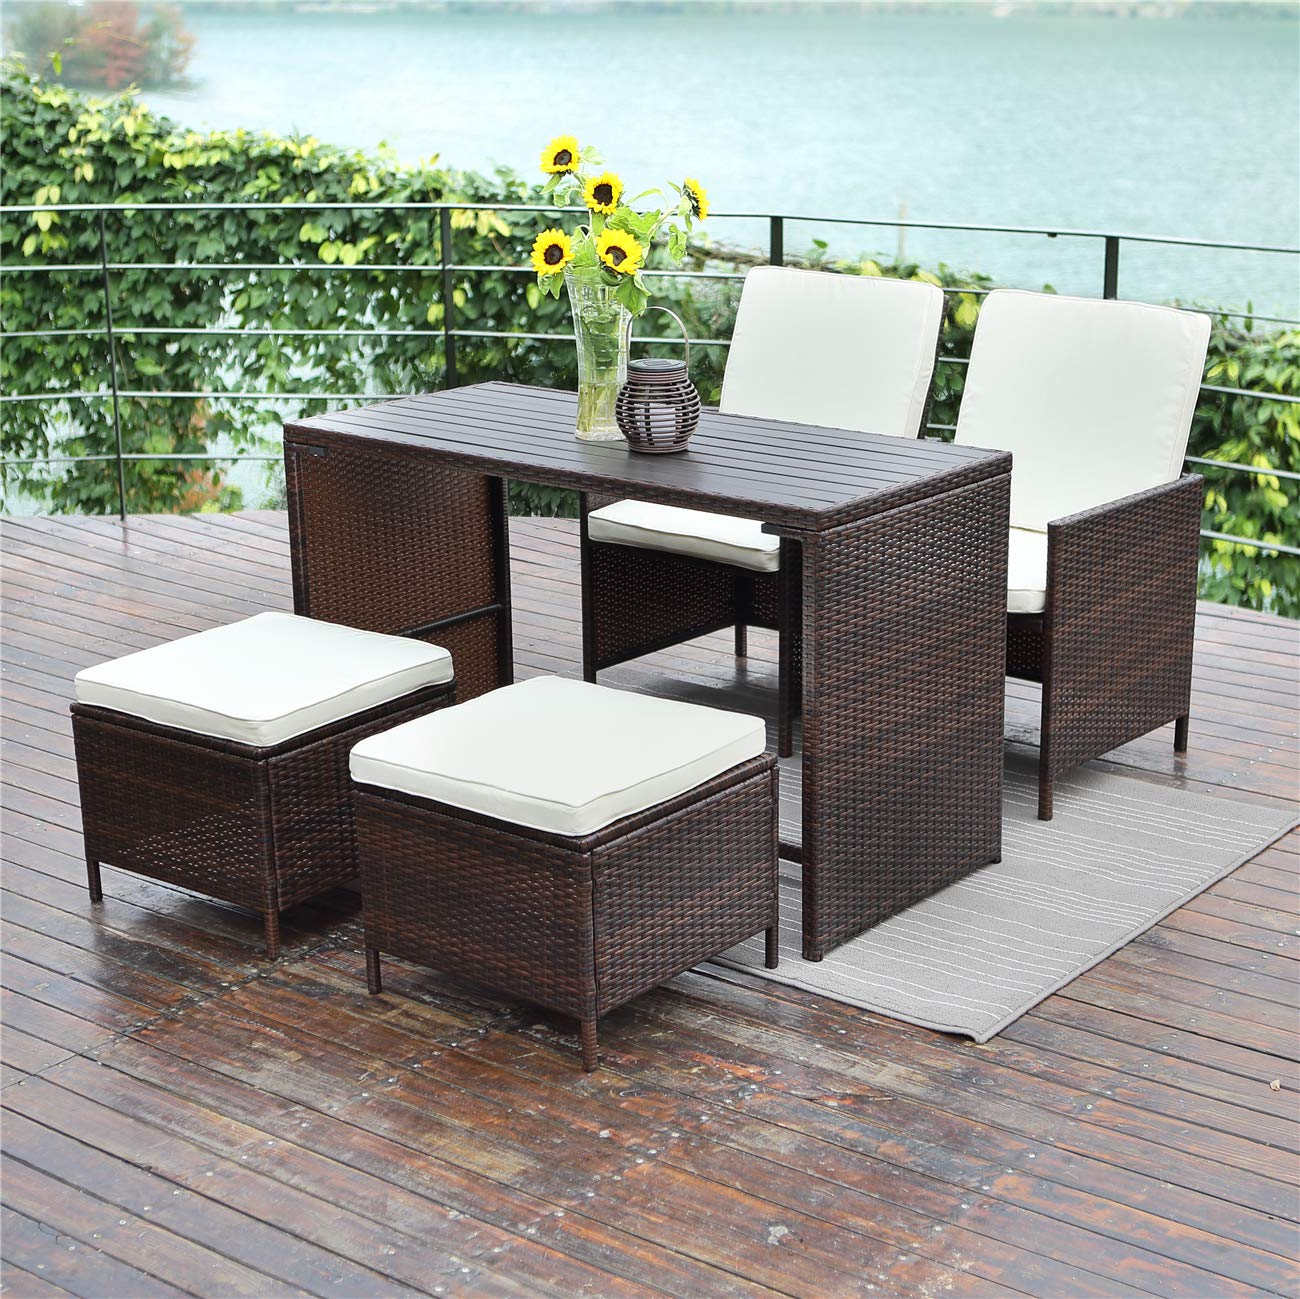 Wisteria Lane 5 Piece Patio Porch Dining Set Outdoor Furniture Bar Bistro Wicker Chair Stool Wooden Table All-Weather Conversation,Brown Wicker Beige Cushions